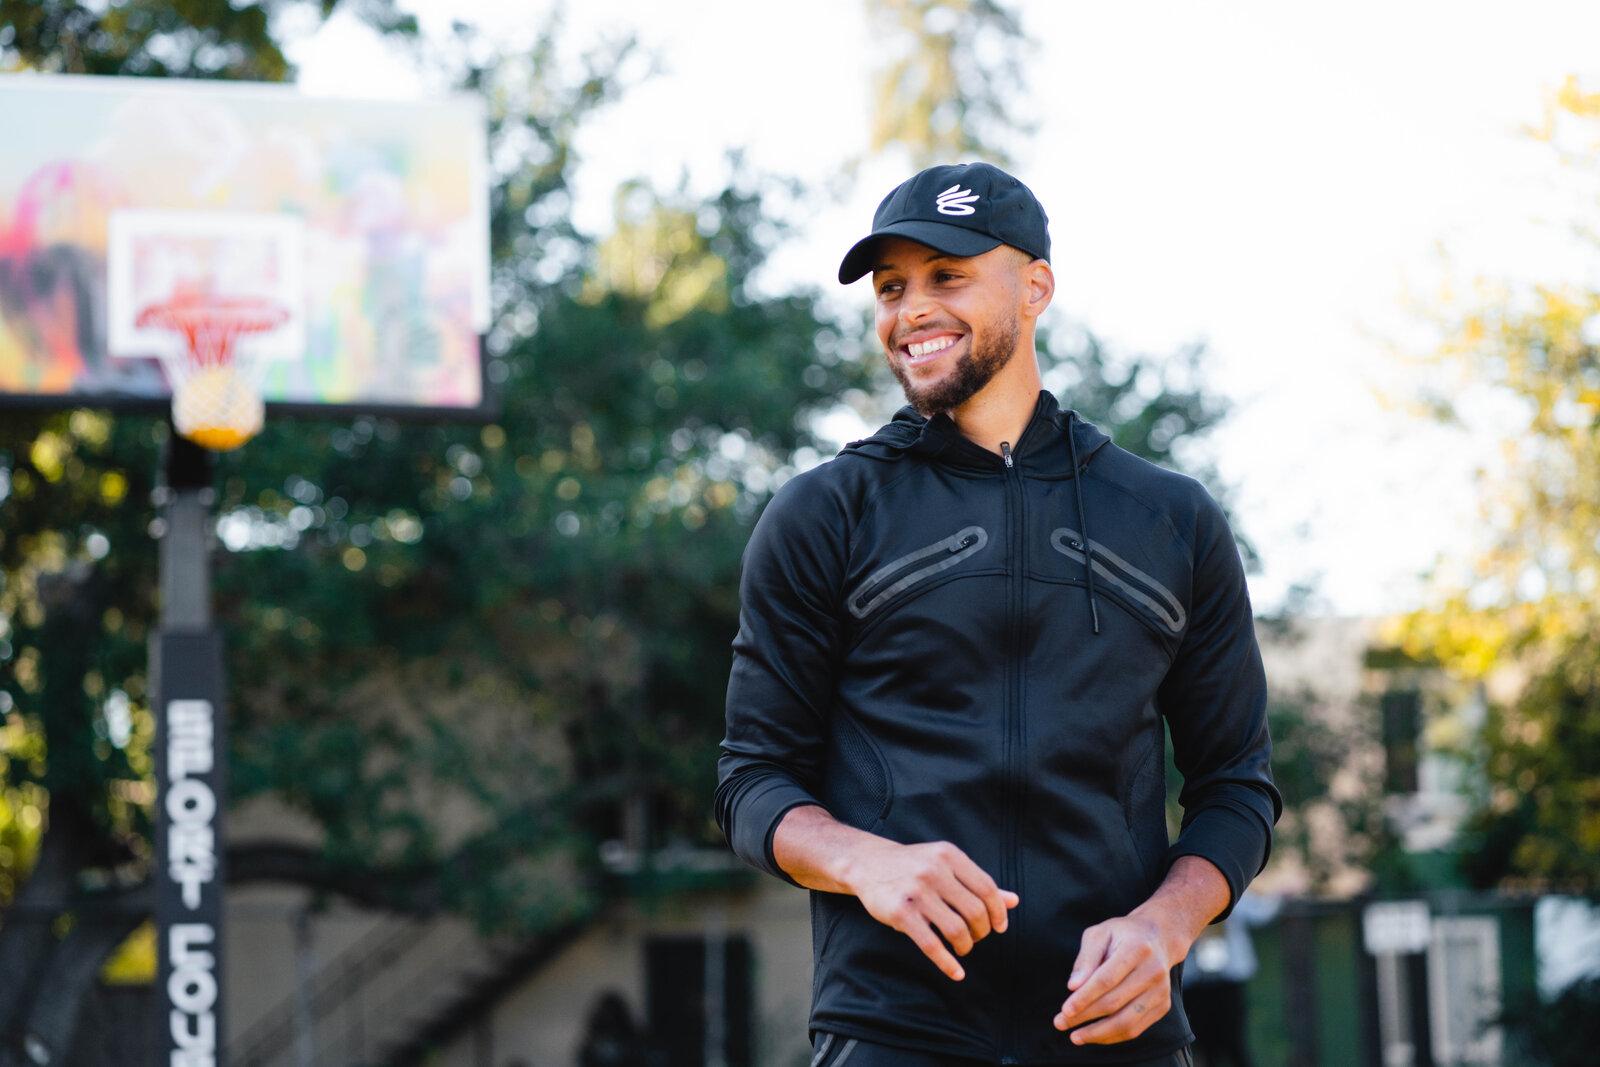 Stephen and Curry Brand reveal the newly refurbished basketball court at the Manzanita Recreation Center in Oakland, November 2020.